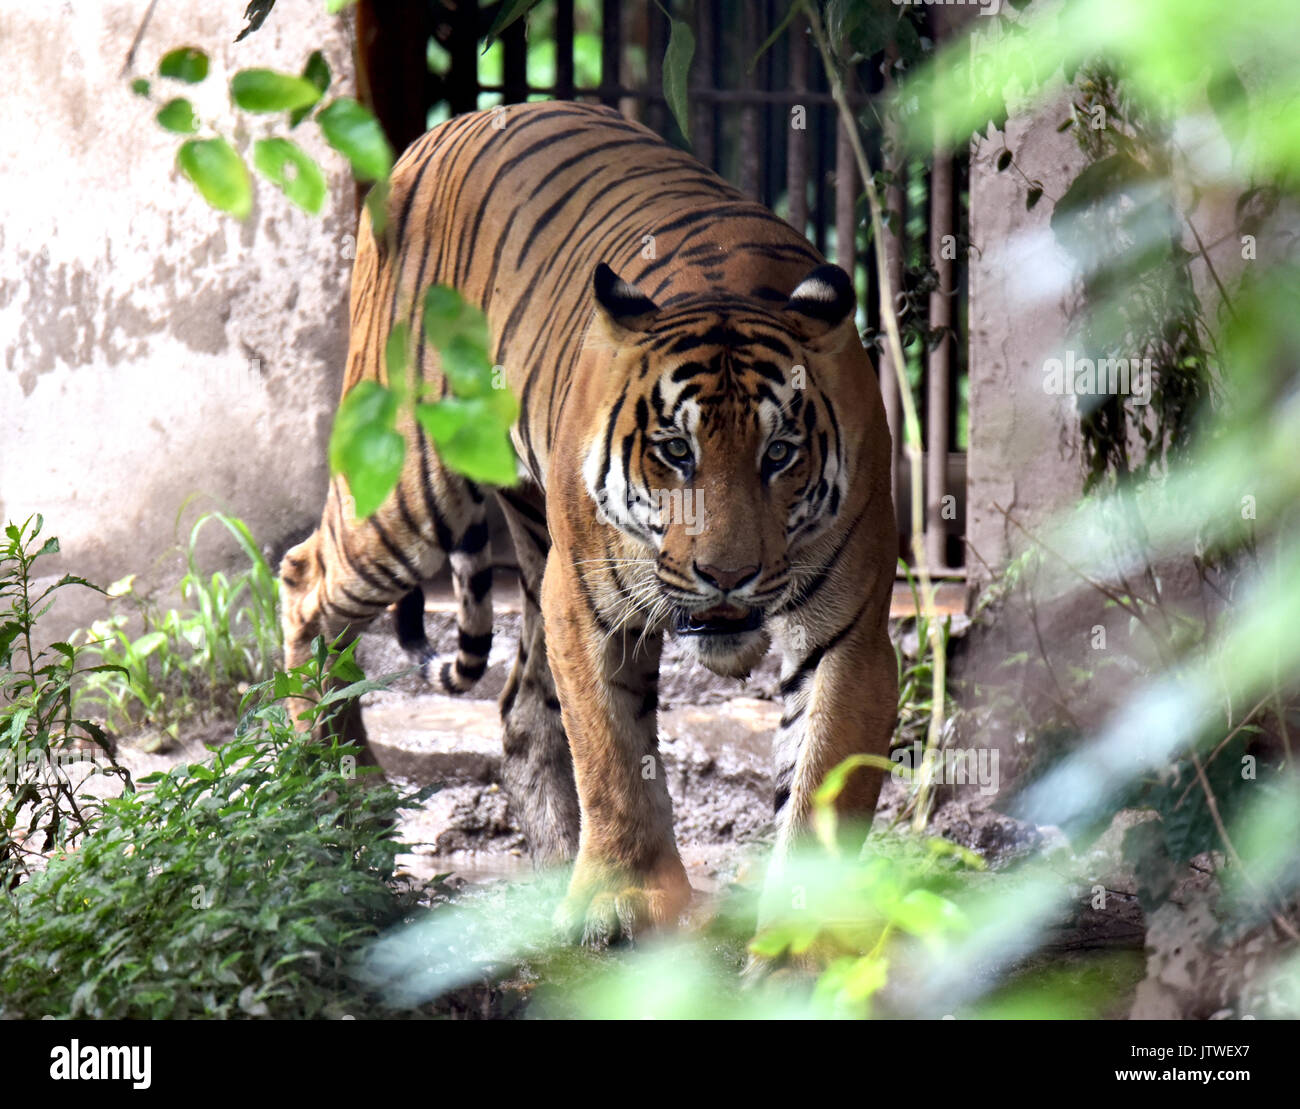 royal bengal tigers The royal bengal tigers of bangladesh 15k likes the page is dedicated to the royal bengal tigers living at the bangladeshi region of the largest tidal.